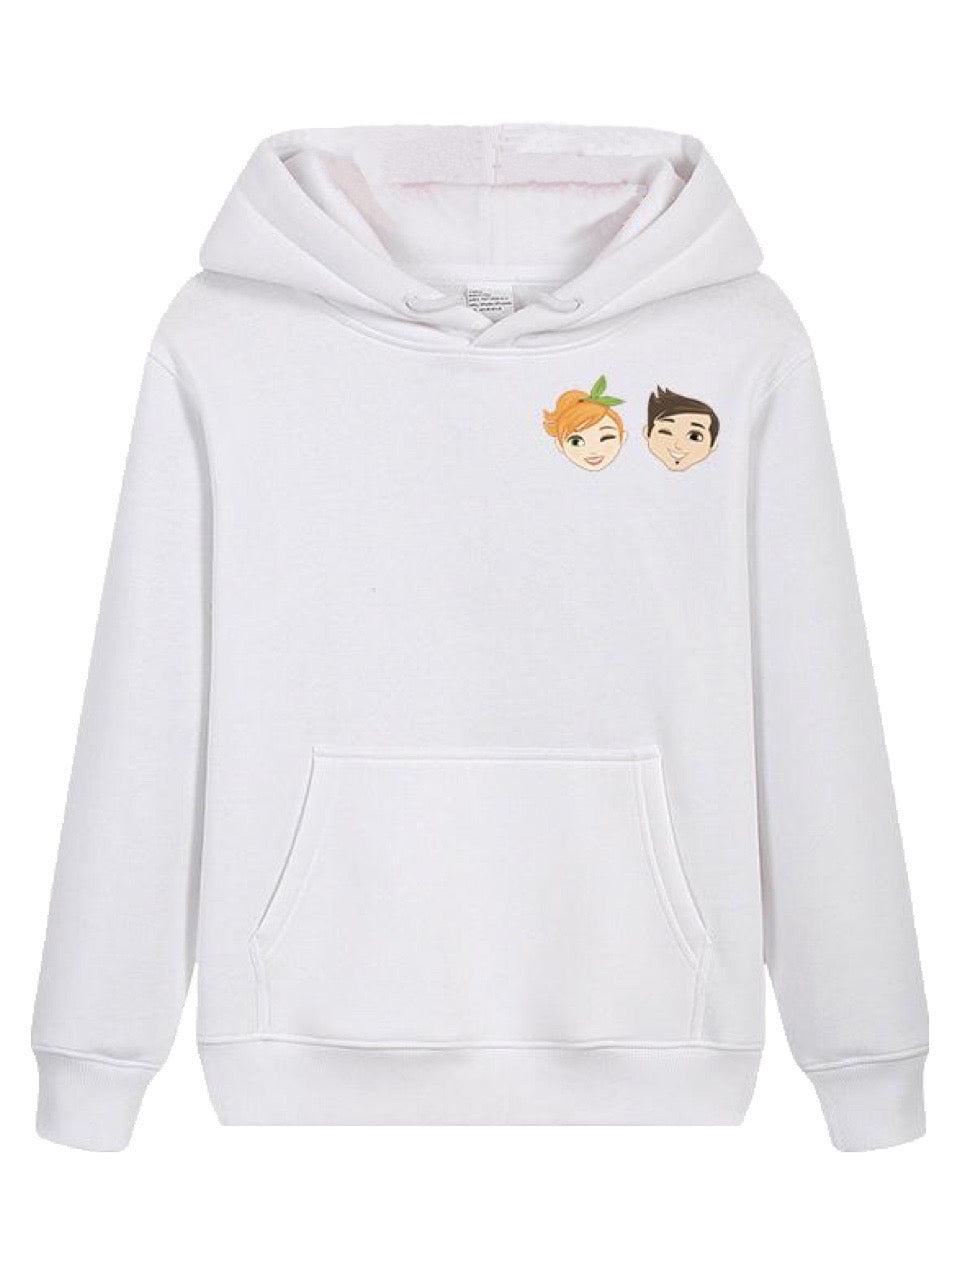 Heidi and Paul kids hoodie